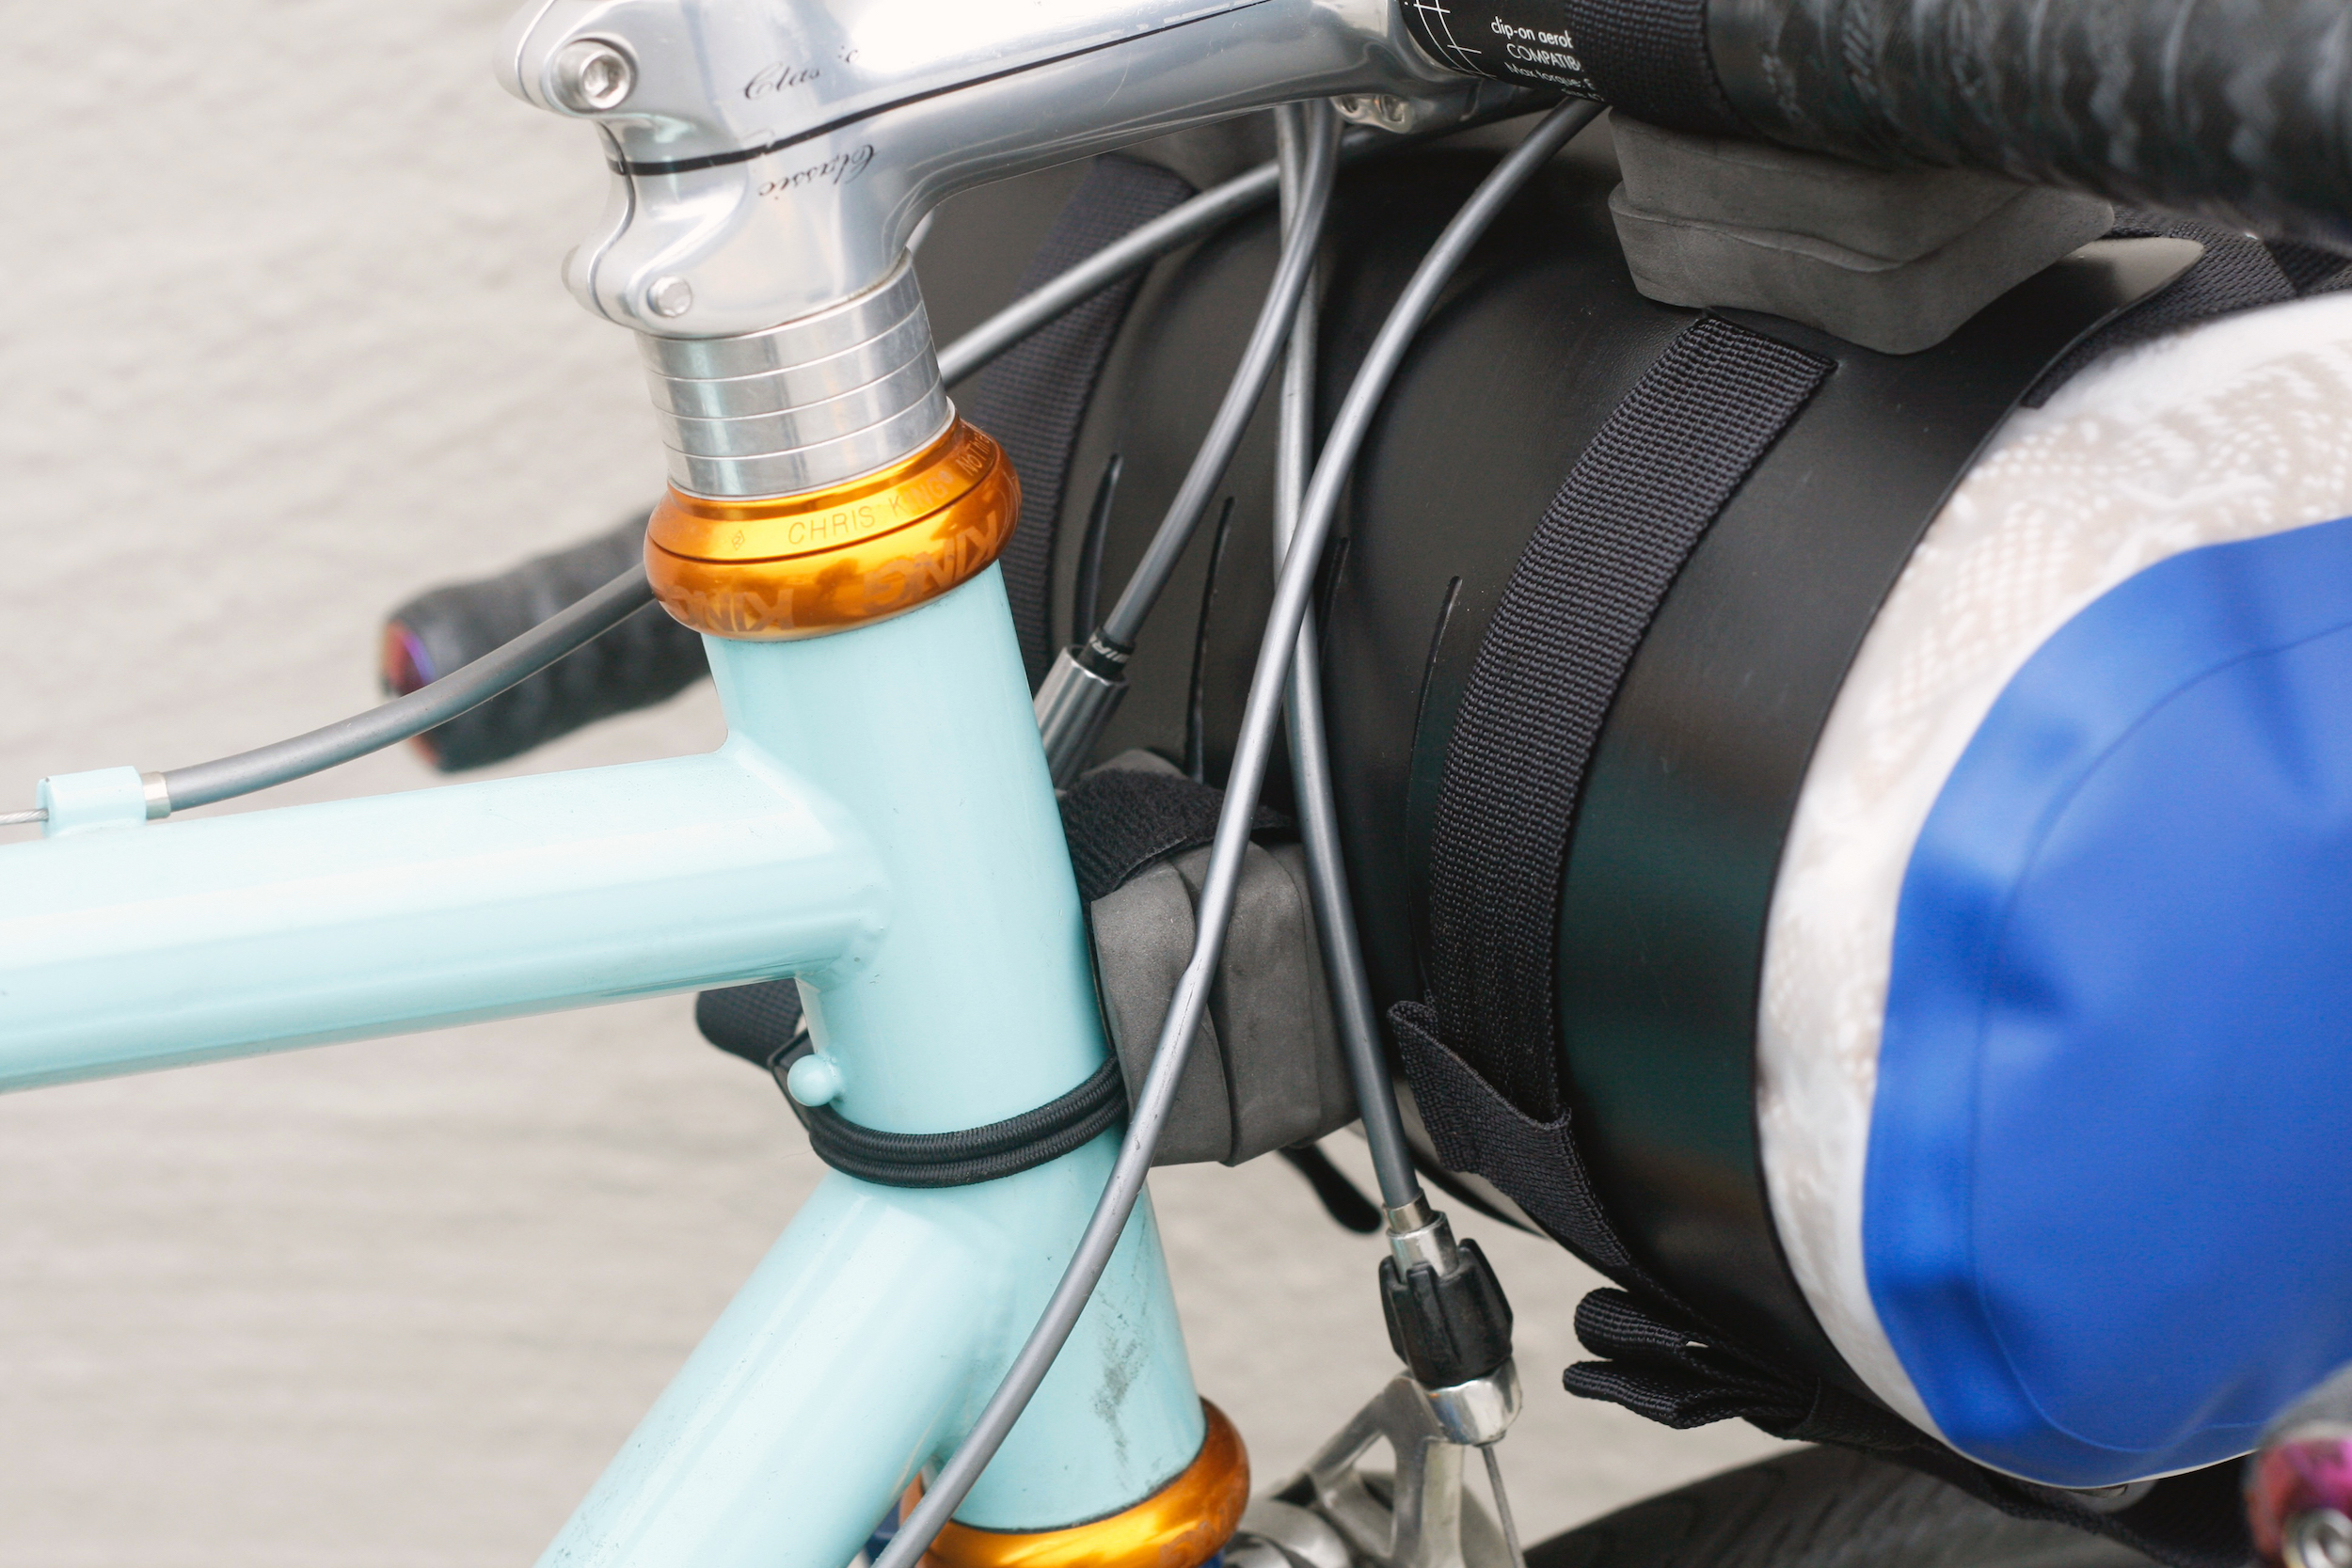 (2) spacers on each handlebar attachment, (3) spacers on lower attachment point, 5L dry bag shown, this smaller frame doesn't fit a larger dry bag because it would run into the brake, the handlebar spacers are only used to keep the top handlebar position accessible